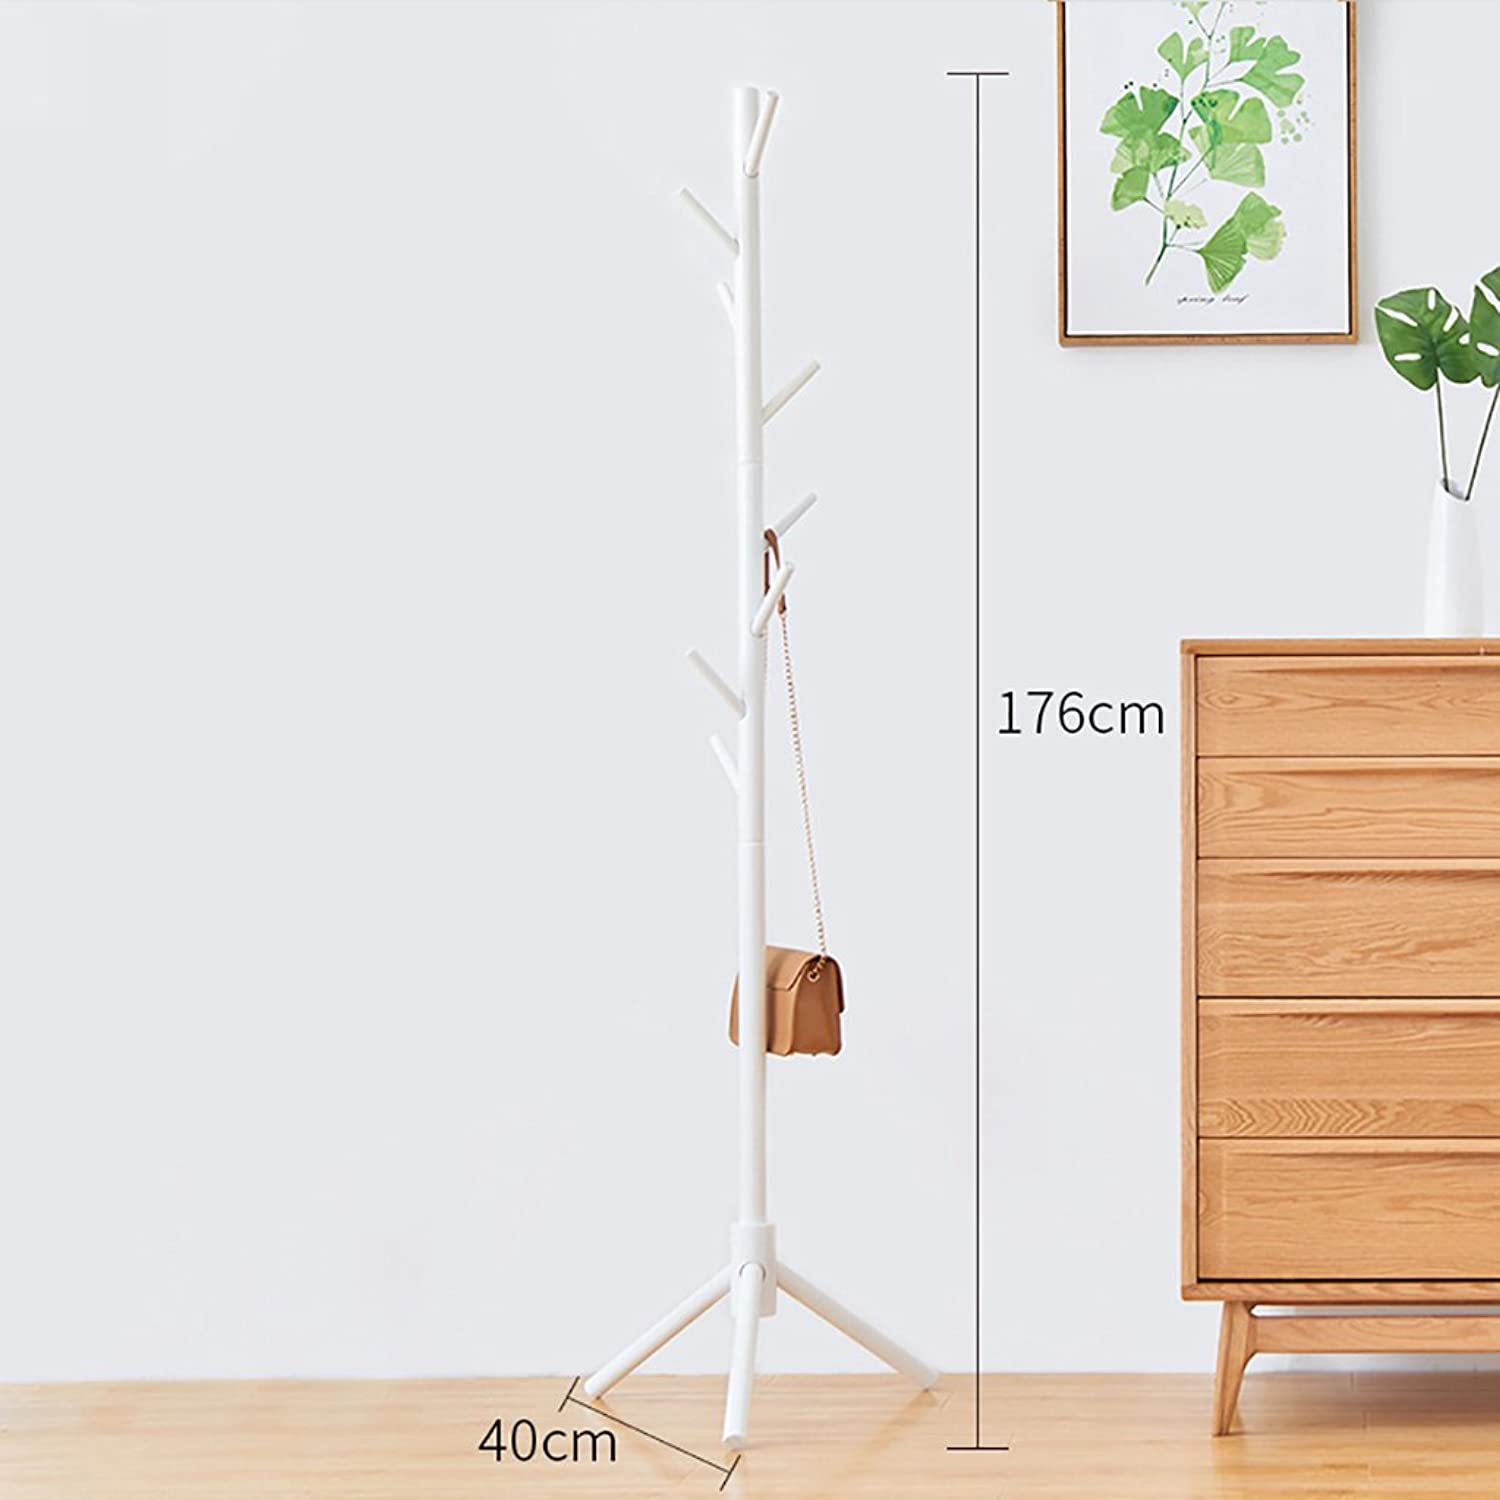 JPYMJ Wooden Coat Stand 8 Hooks Hat and Coat Rack Free Standing Tree Clothes Rail Hanging Storage Organiser for Entryway Hallway Bedroom Closet Wardrobe 176CM (color   1, Size   176cm)